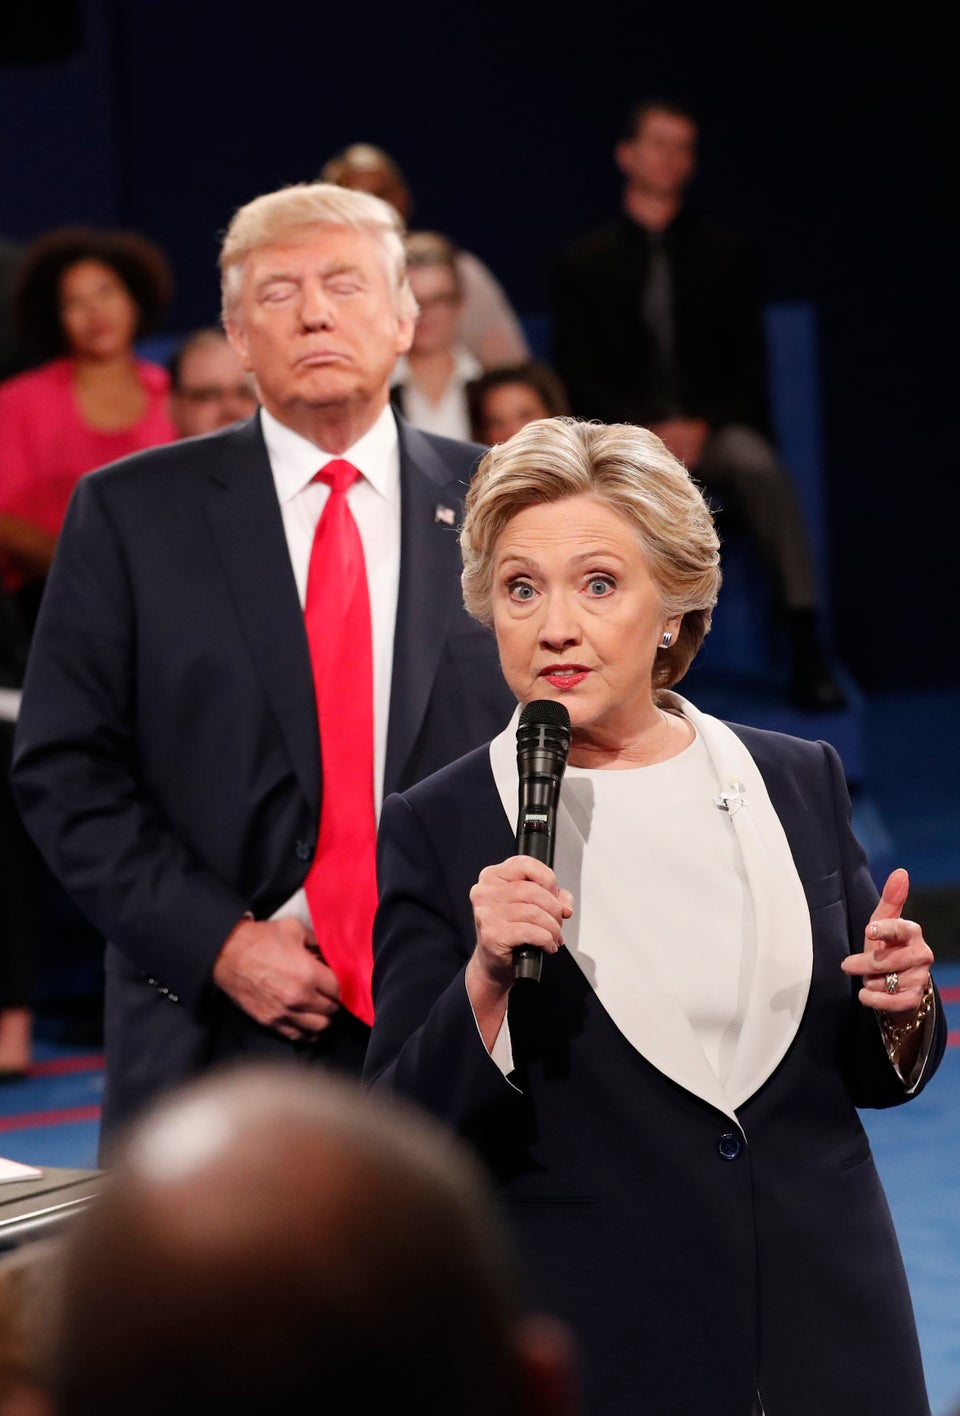 Did Donald Trump Just Body Shame Hillary Clinton? This Clip Sure Sounds Like It